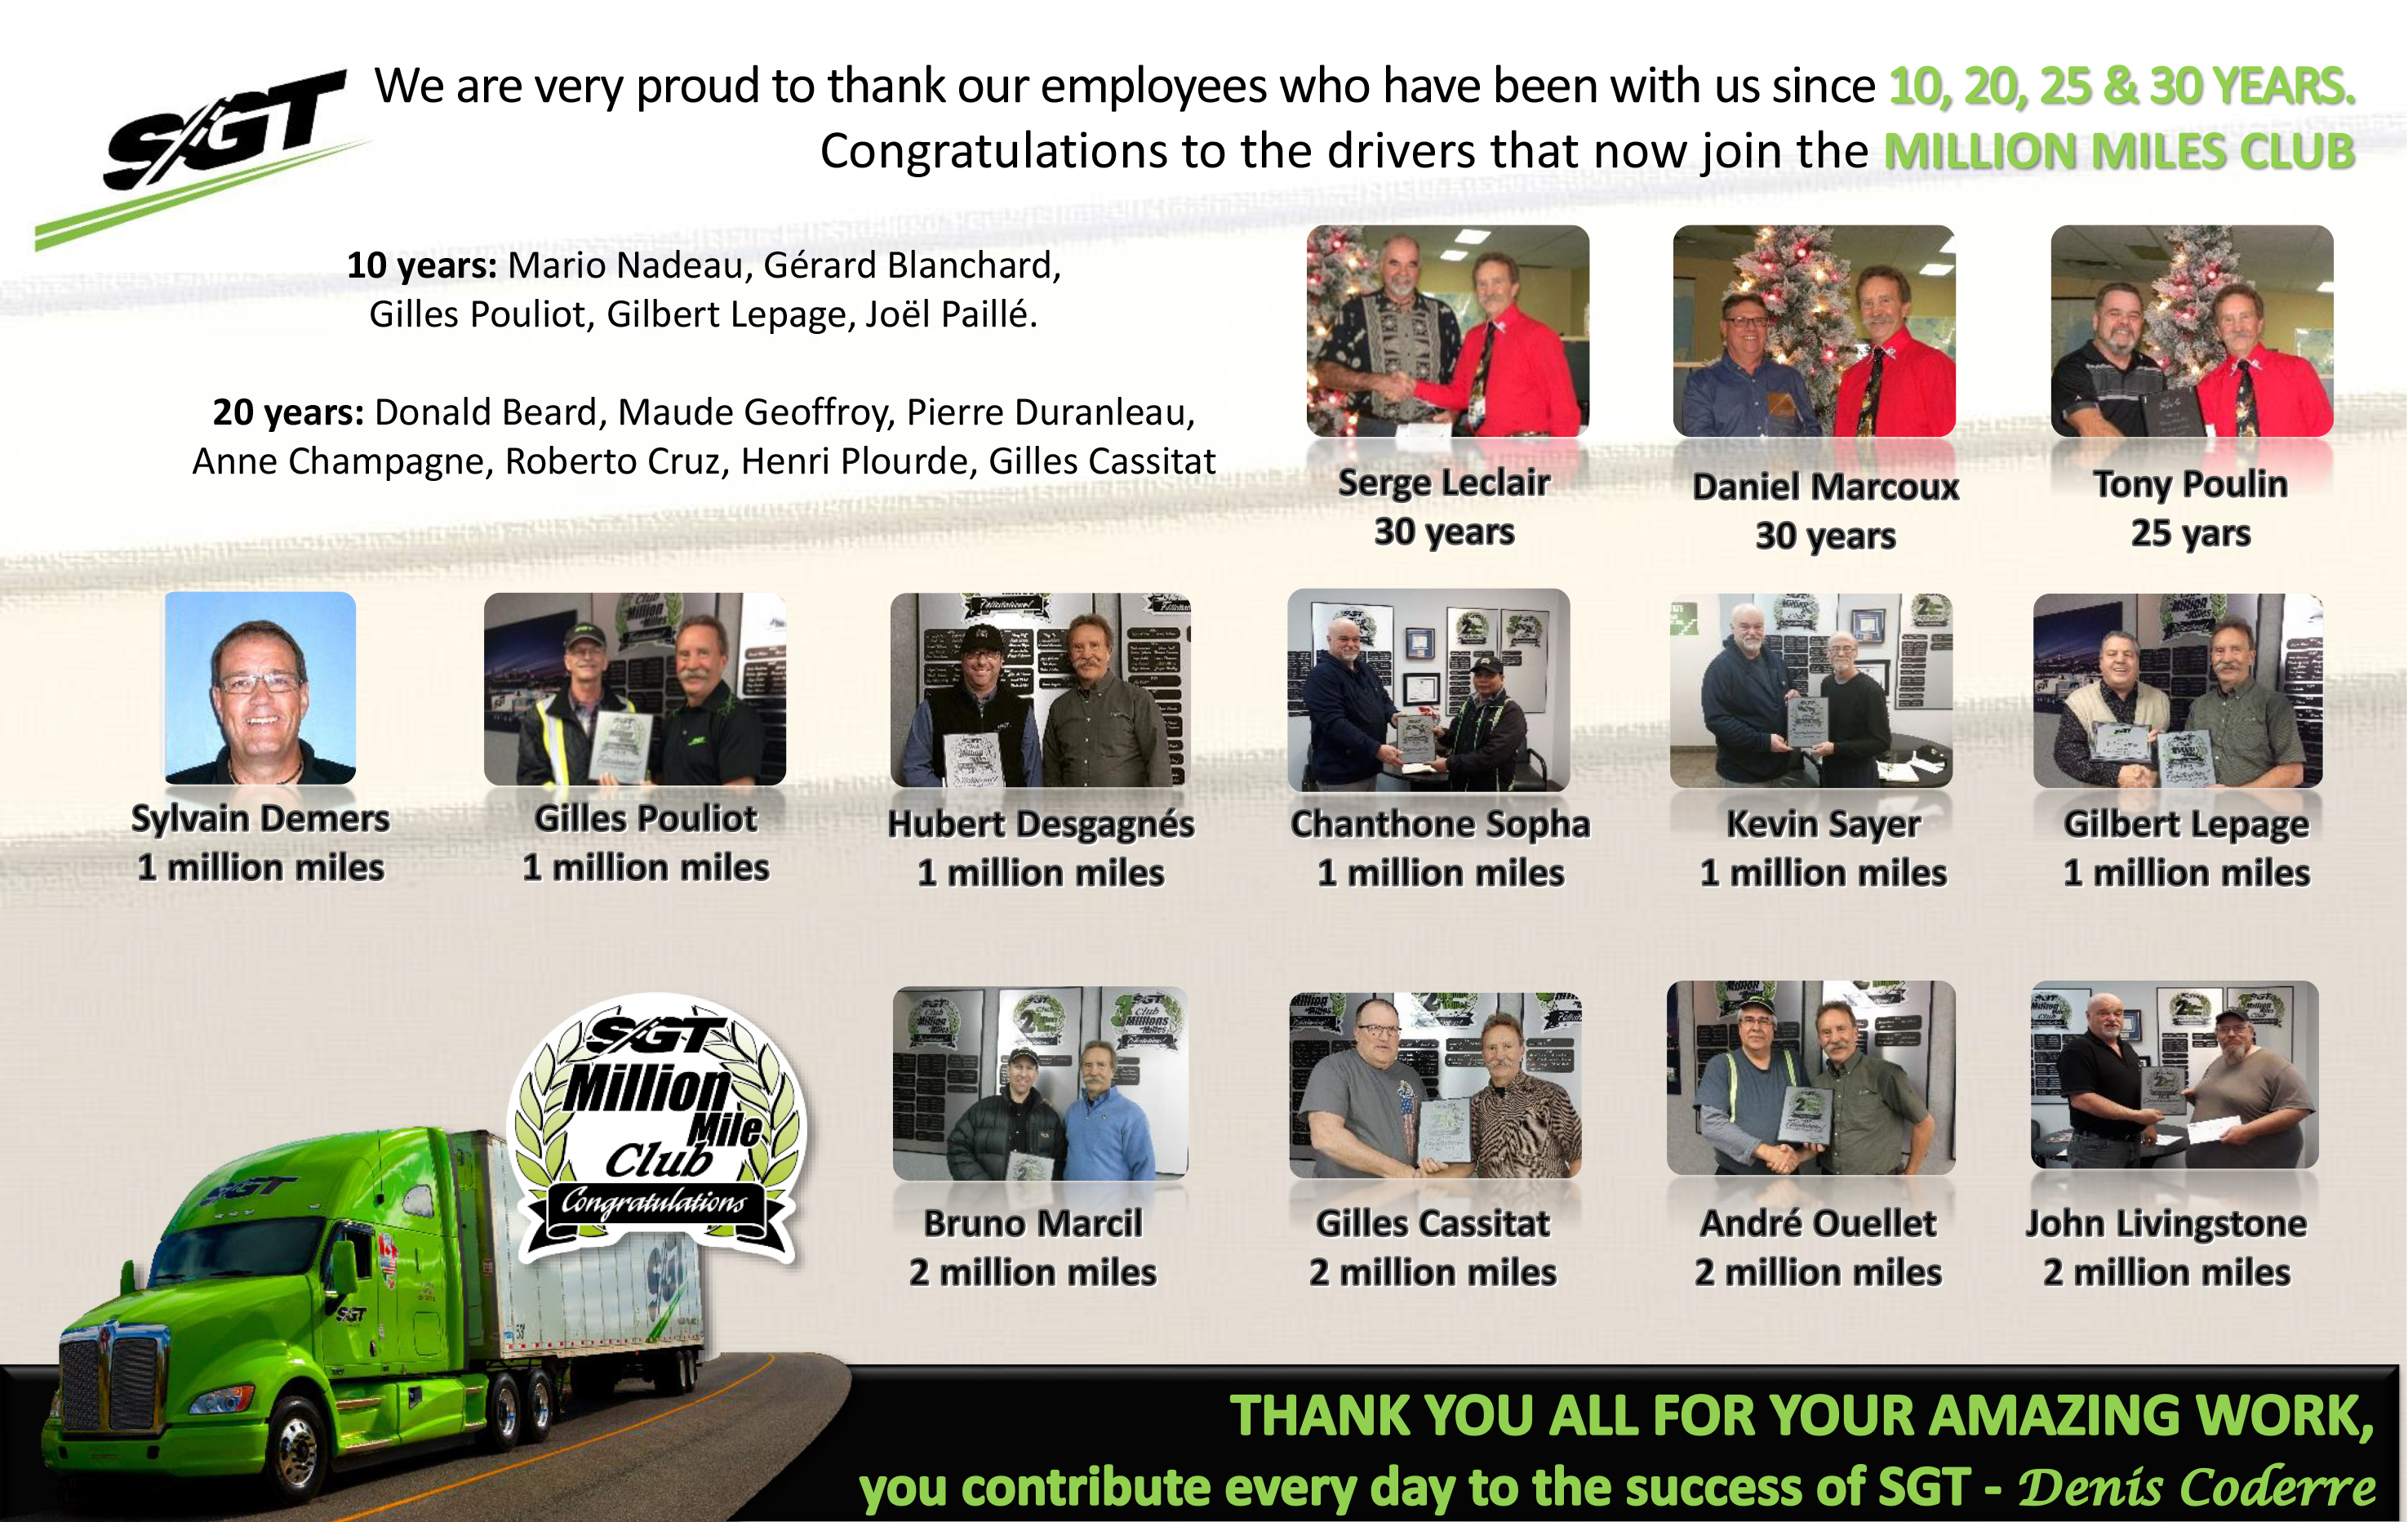 Thank you to our employees who have been with us for 10-20 and 25 years